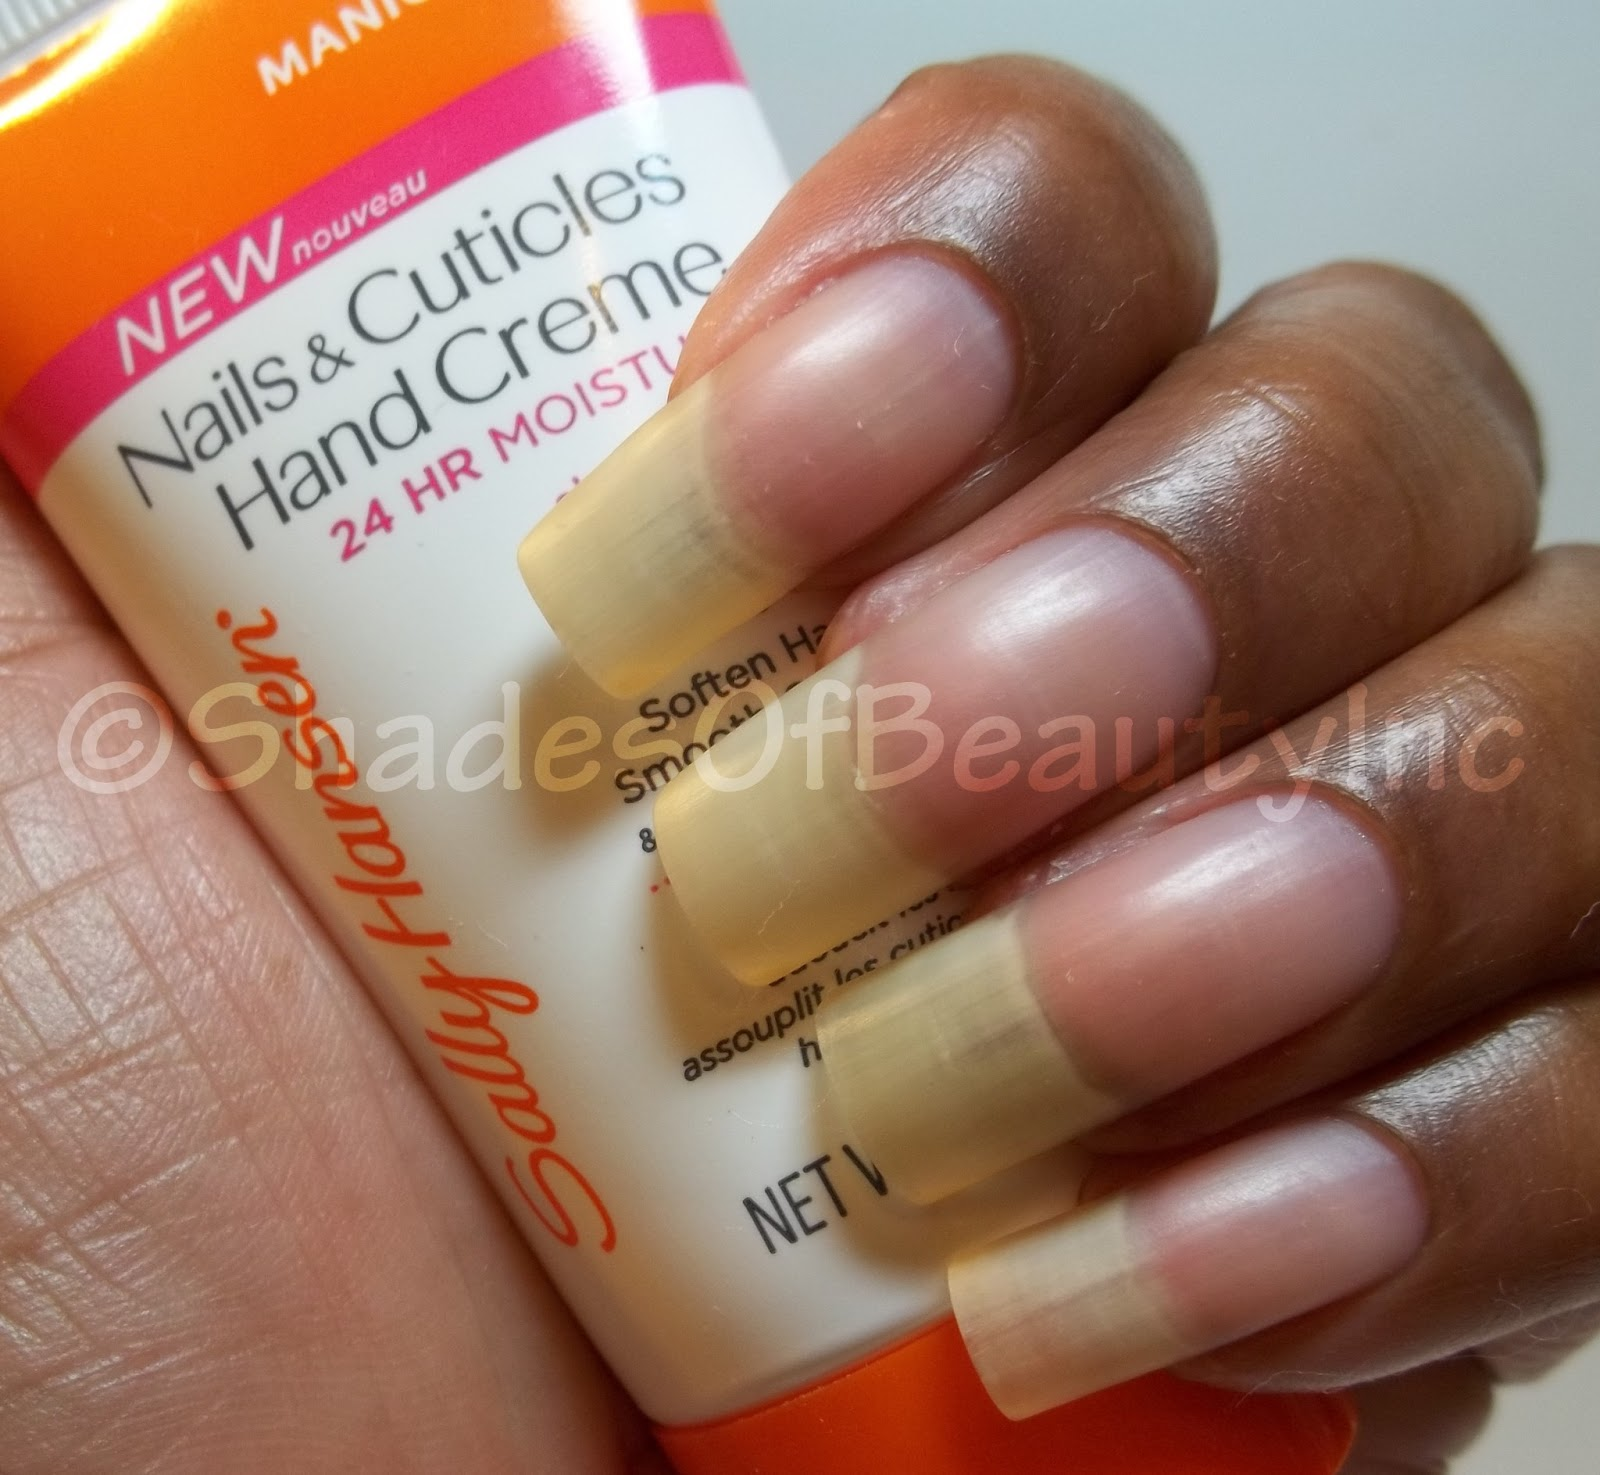 Shades of Beauty, Inc.: SERIES: Nail Care-My Top 5 Cuticle Removers